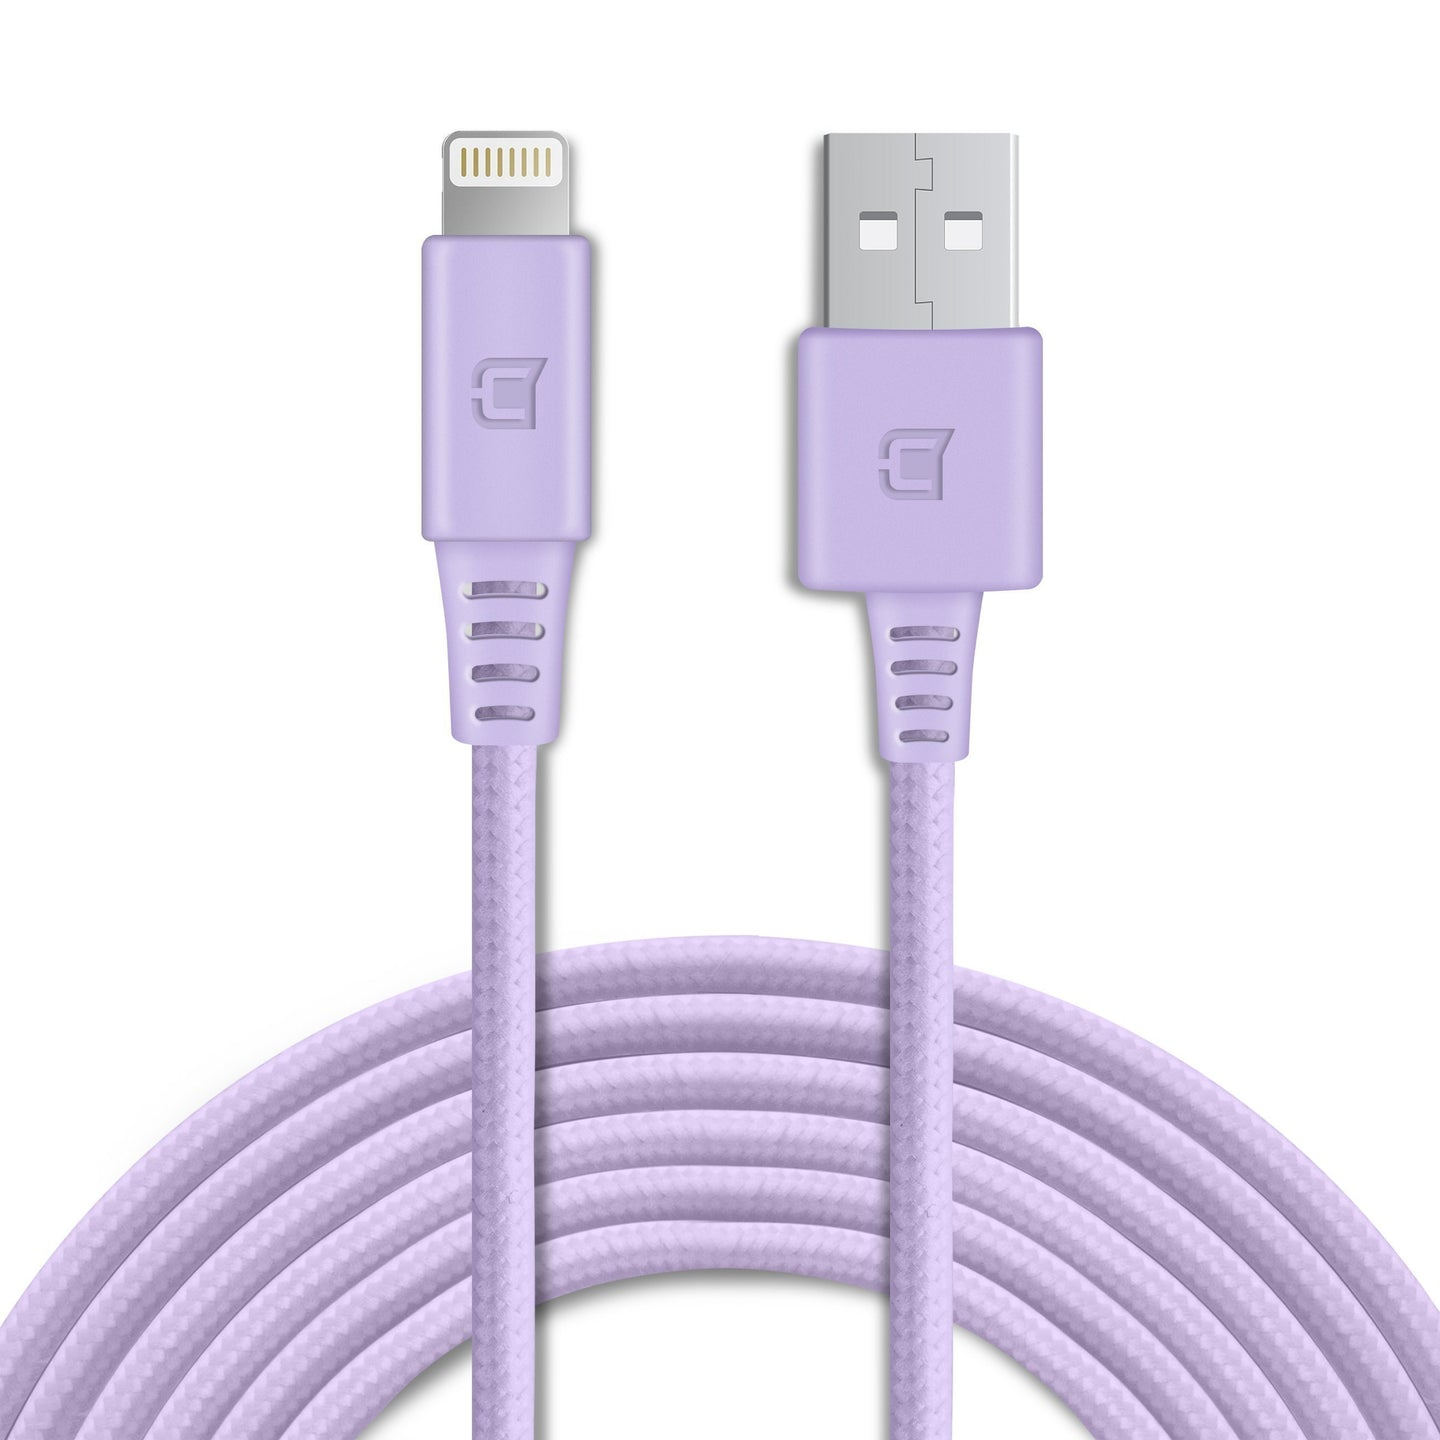 Apple Certified Braided Lightning Cable - Violet - 2 Meter